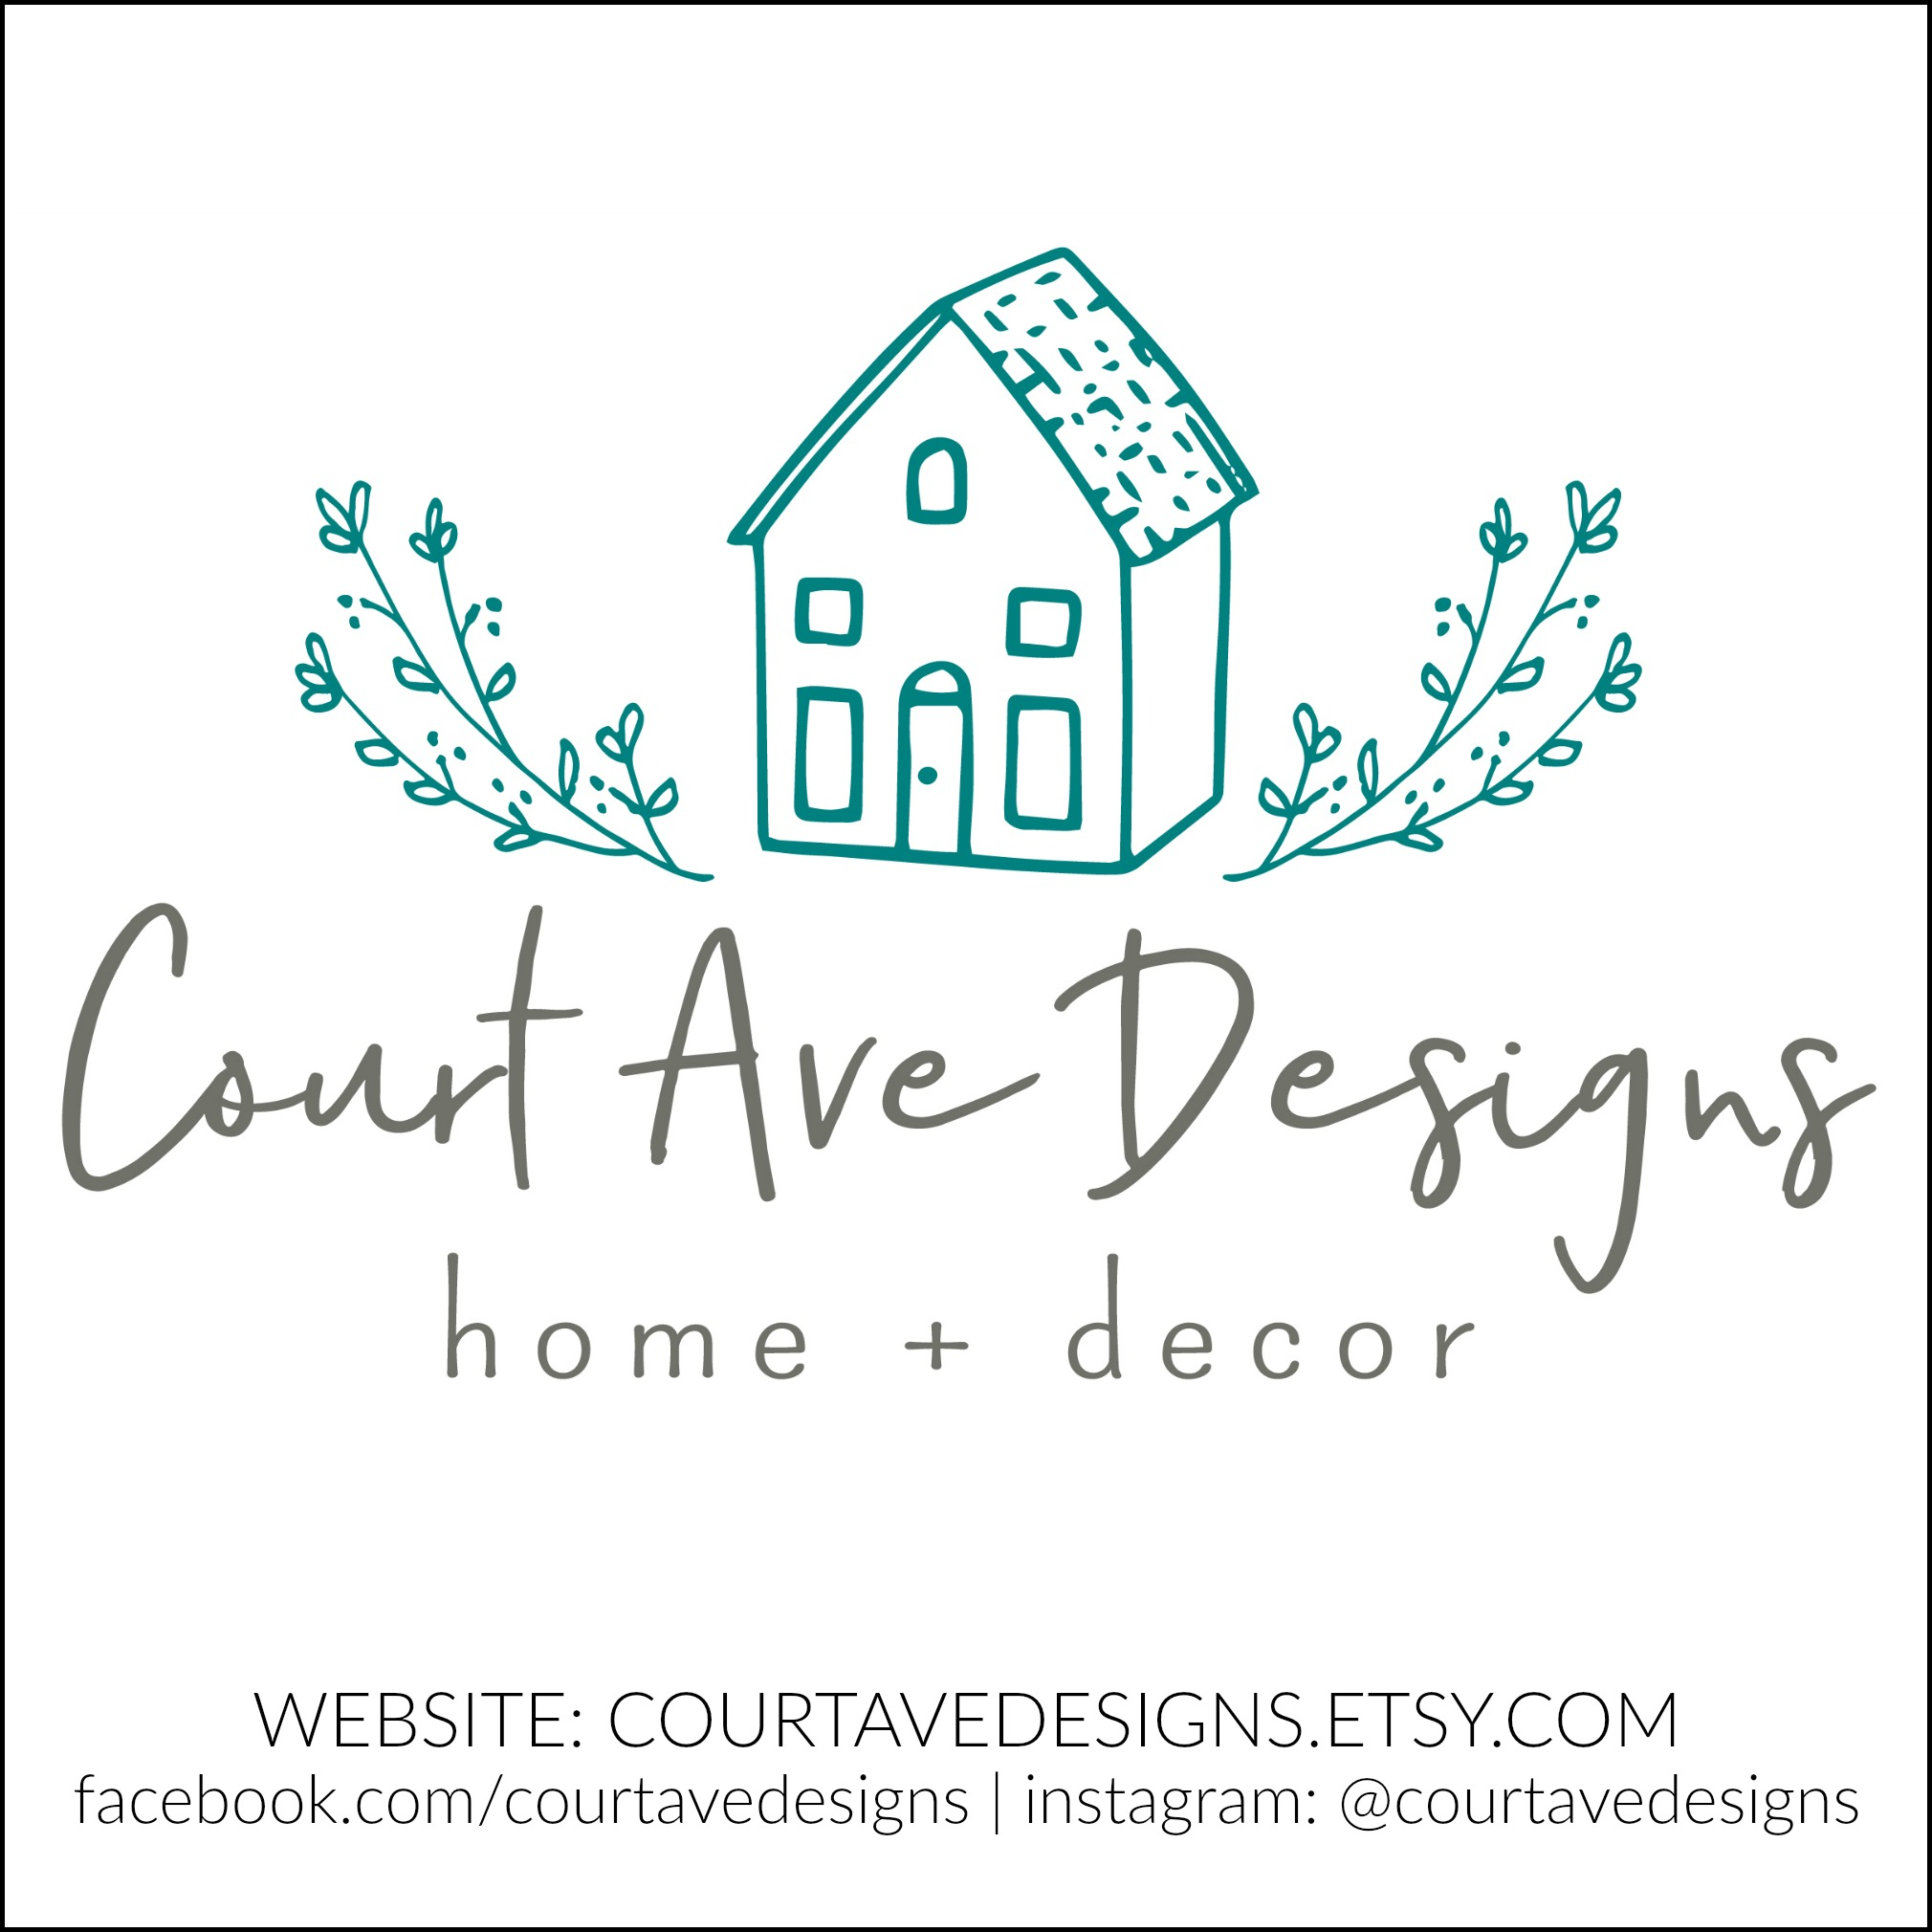 Court Ave Designs | courtavedesigns.etsy.com